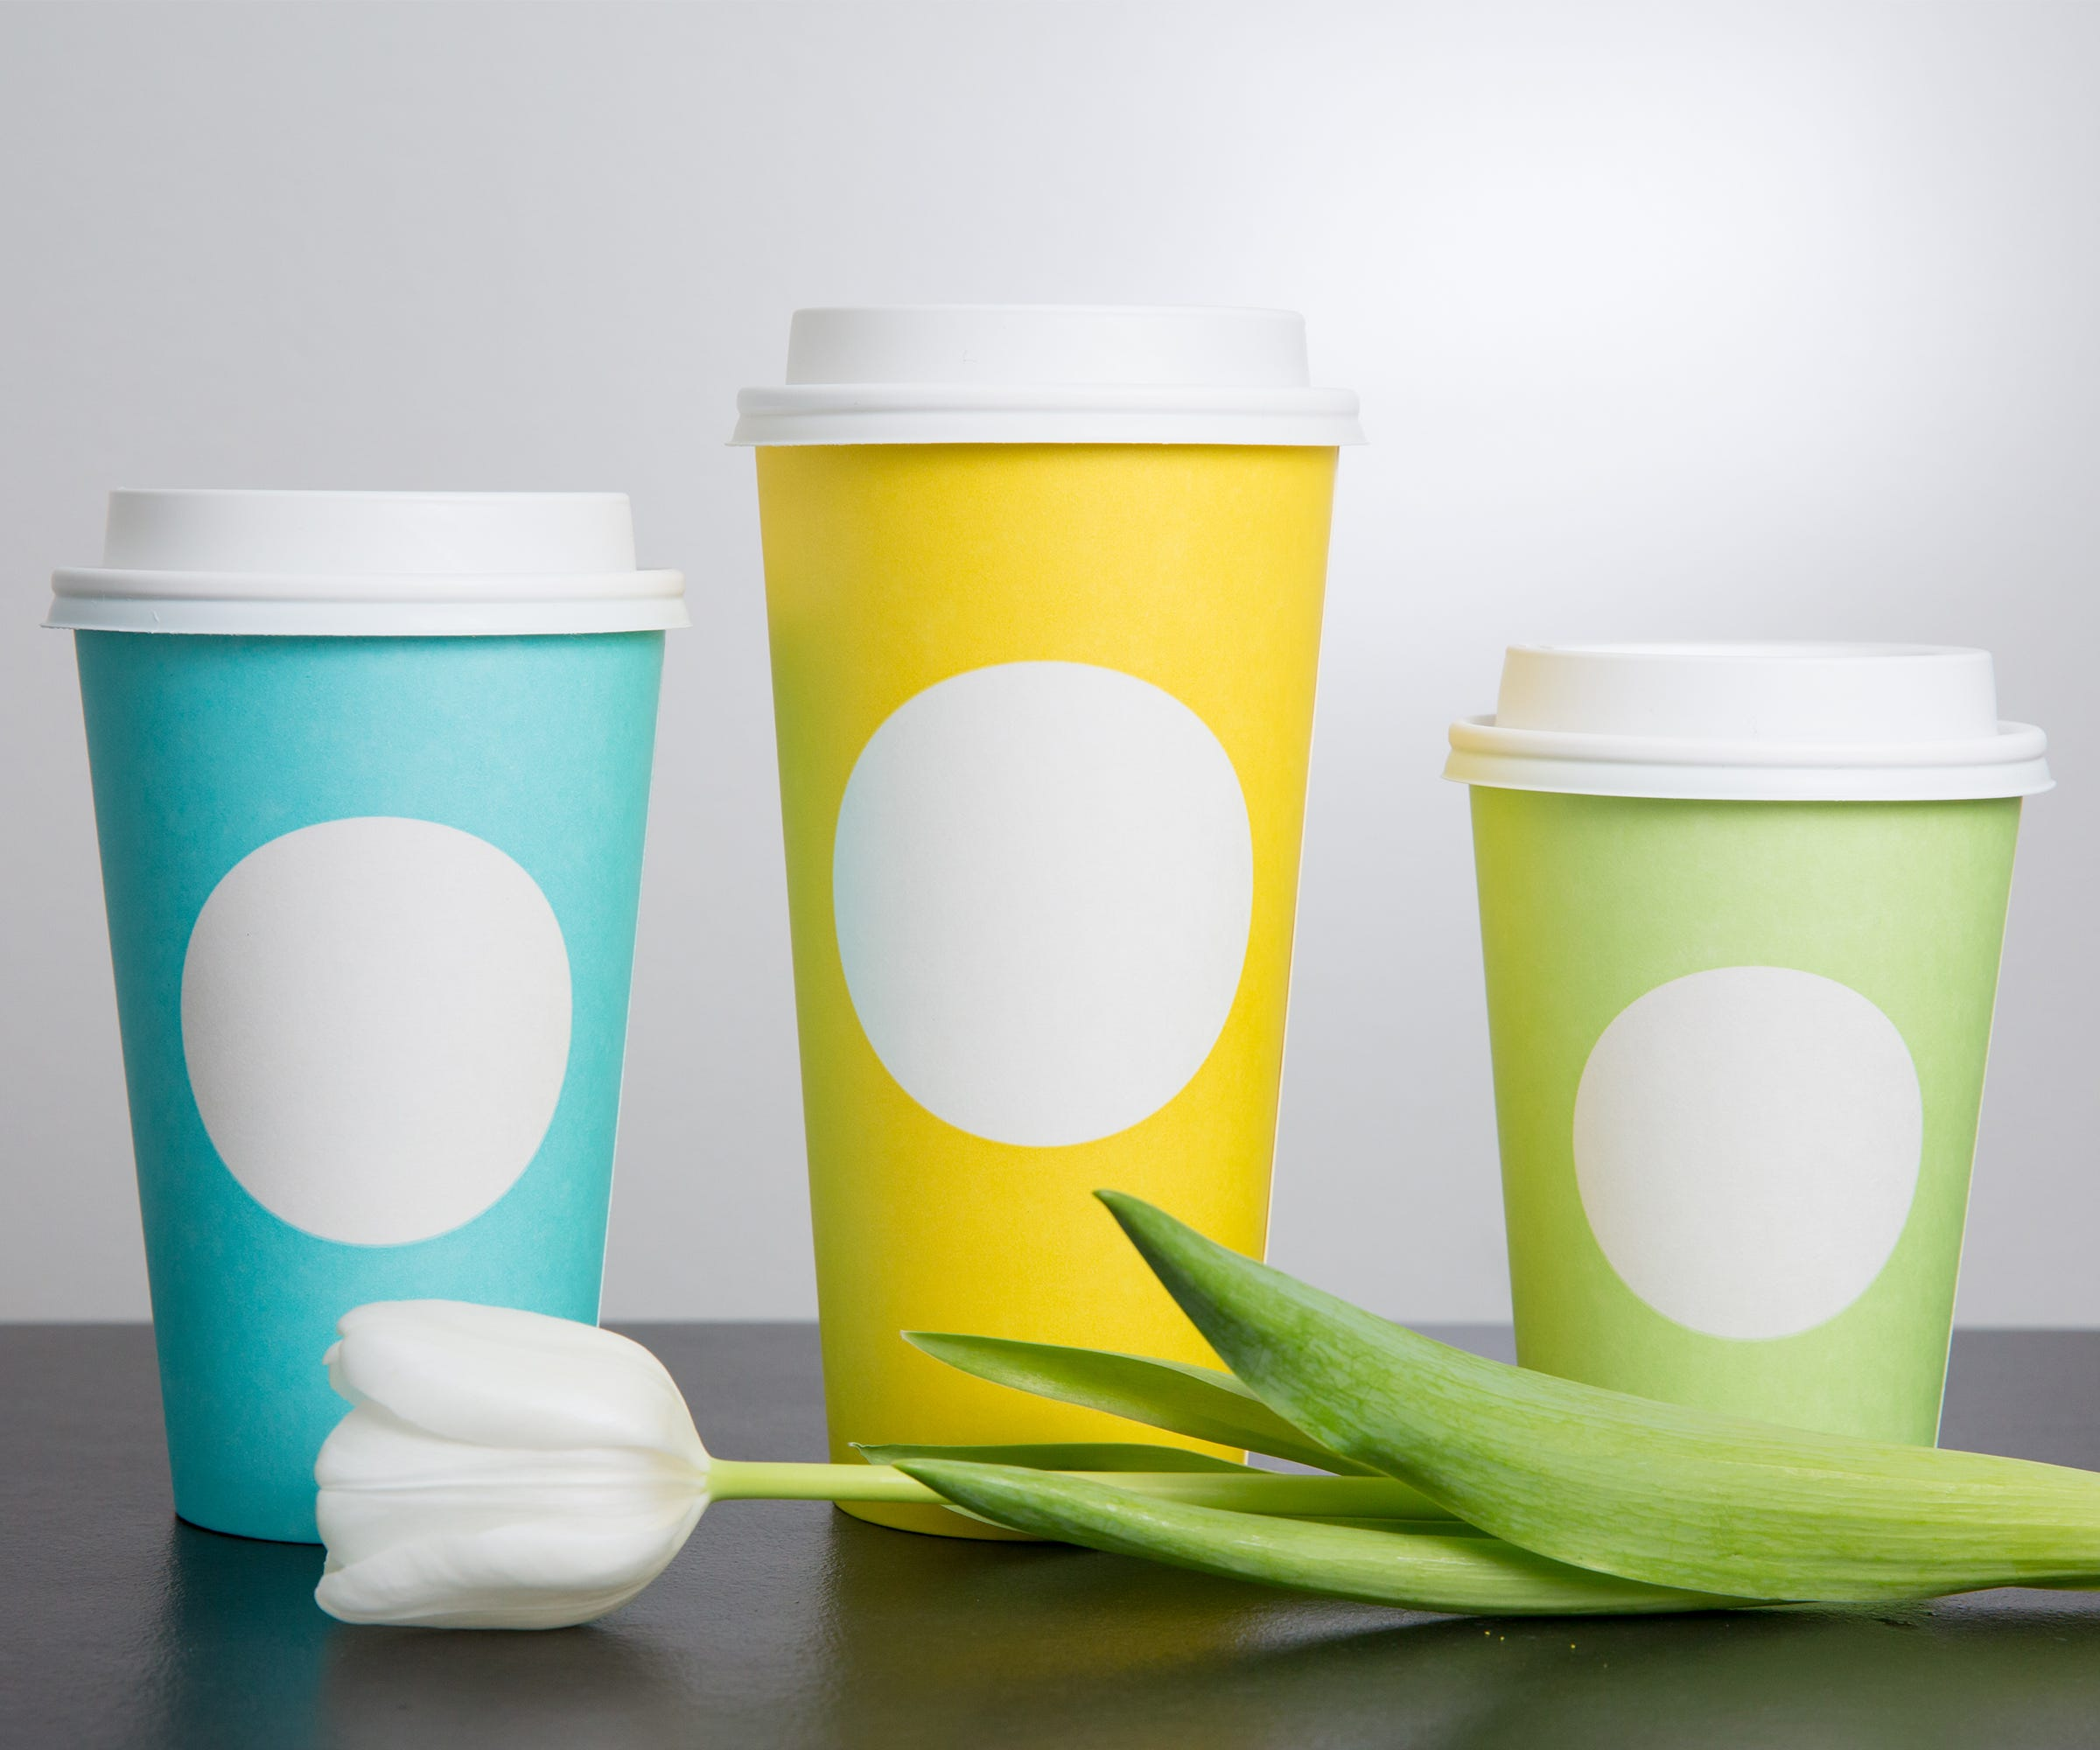 Starbucks' new spring cups look awfully like Twitter eggs